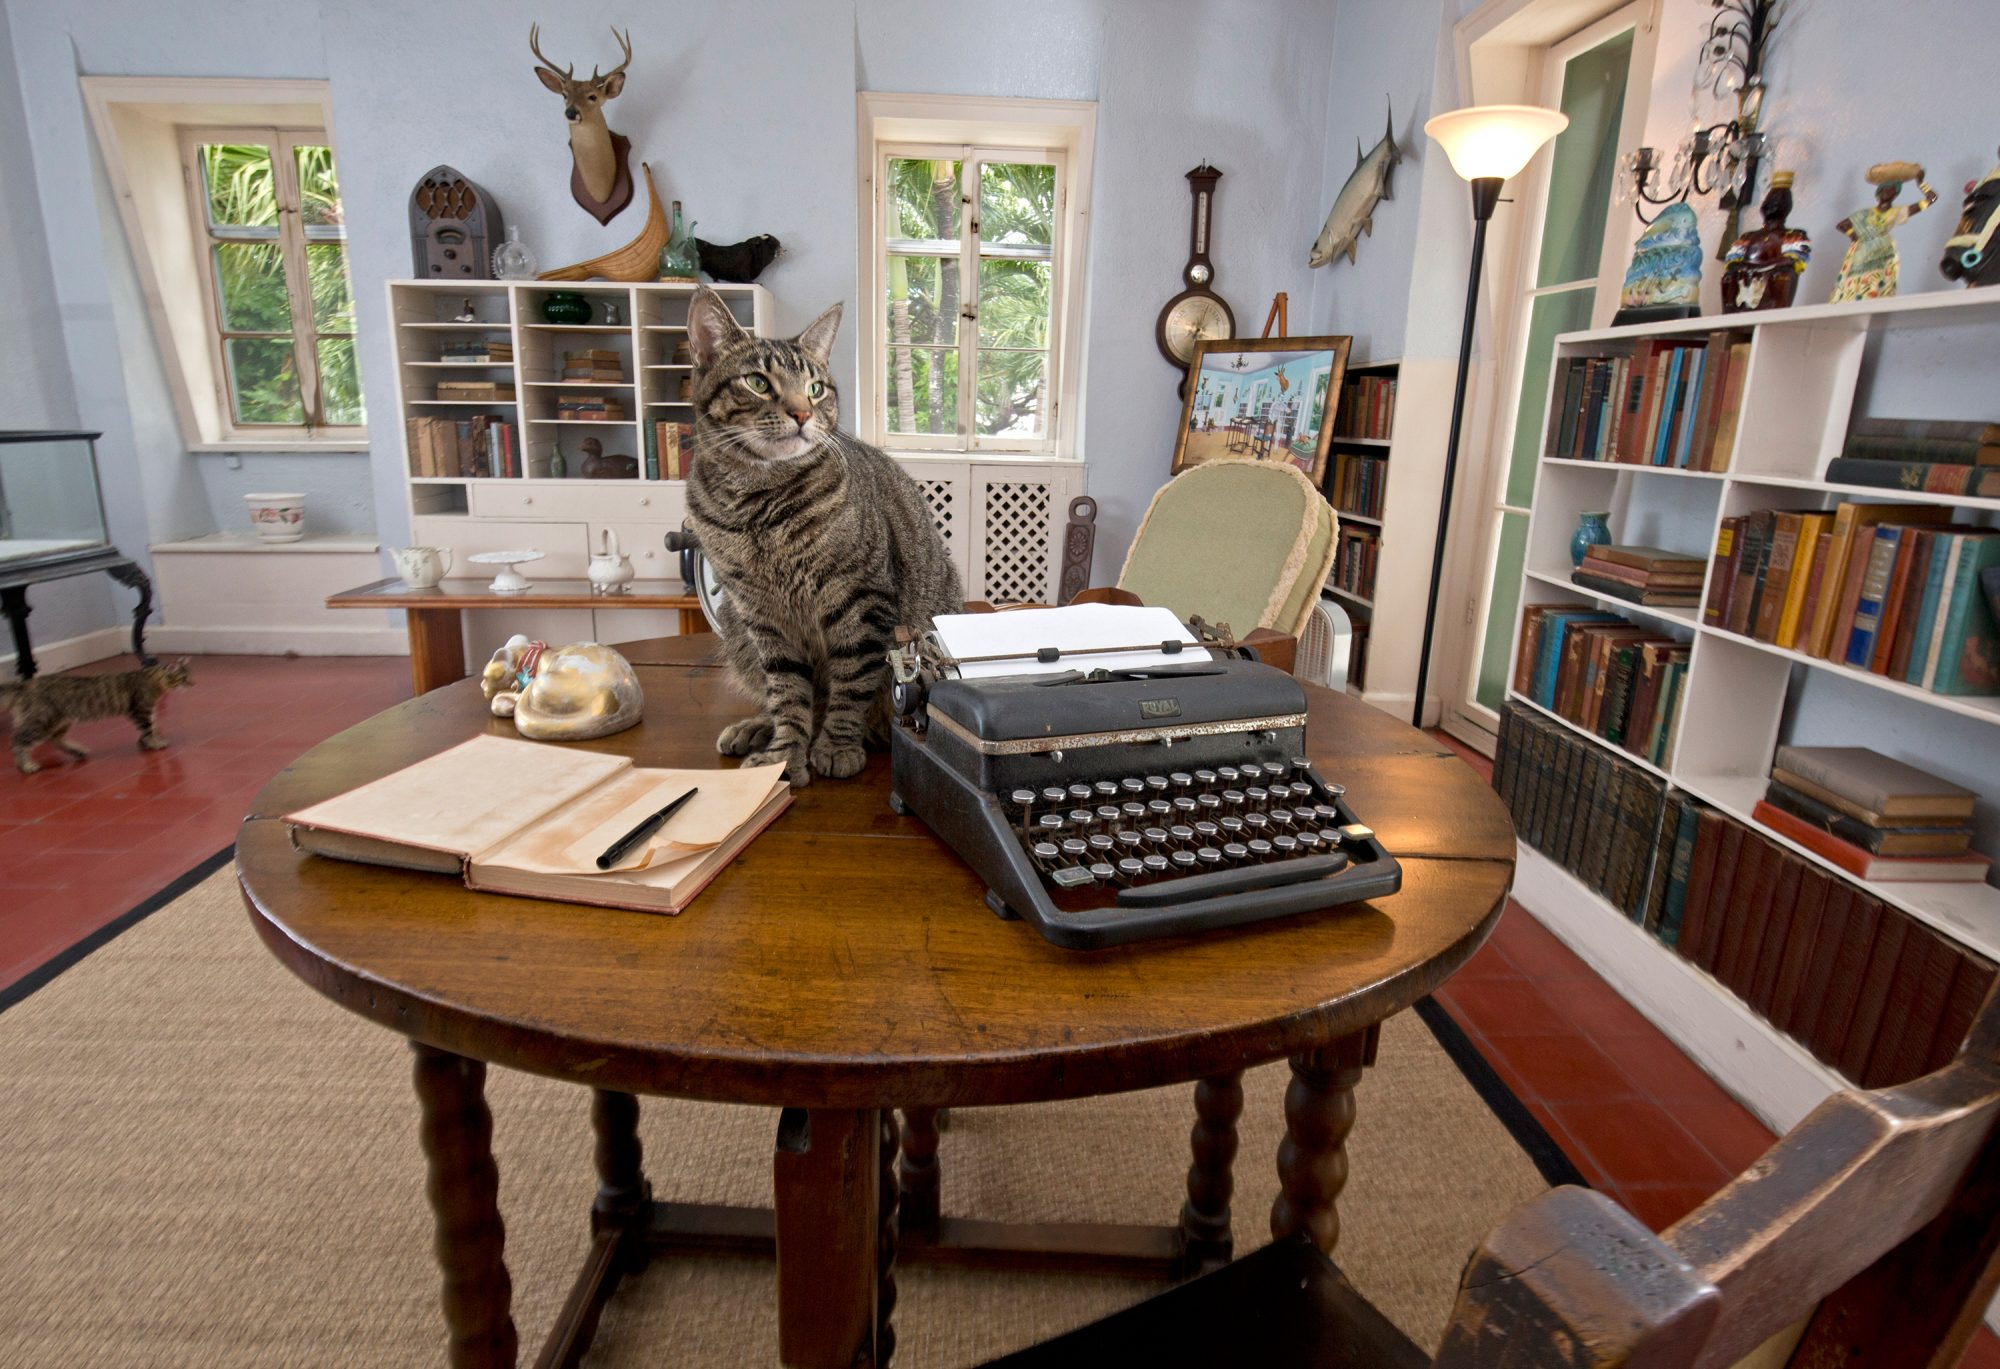 Did you know that around 40 six-toed cats live at the Ernest Hemingway Home and Museum? Legend has it that the writer was given a white six-toed cat by a ship's captain and the legacy lives on. At the home, you can also go on one of the daily tours to lea